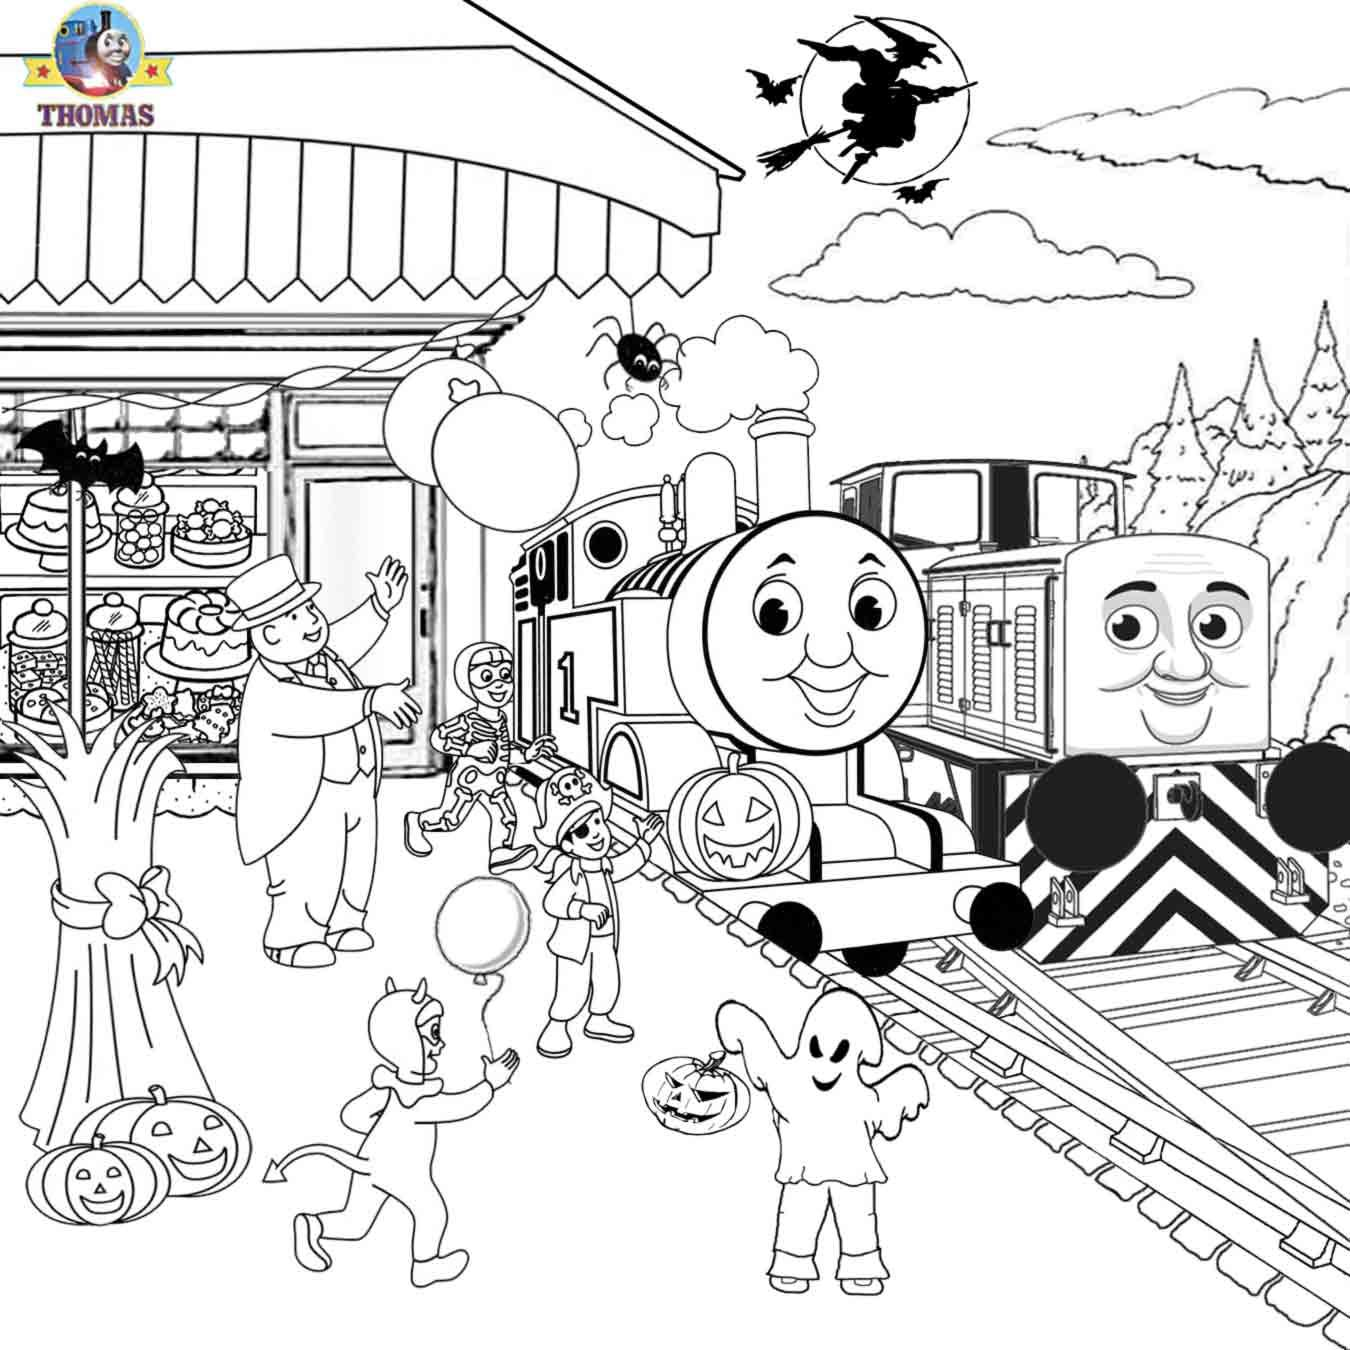 Sel Den Thomas The Train Coloring Pages Free Printables Halloween Activities For Kids To